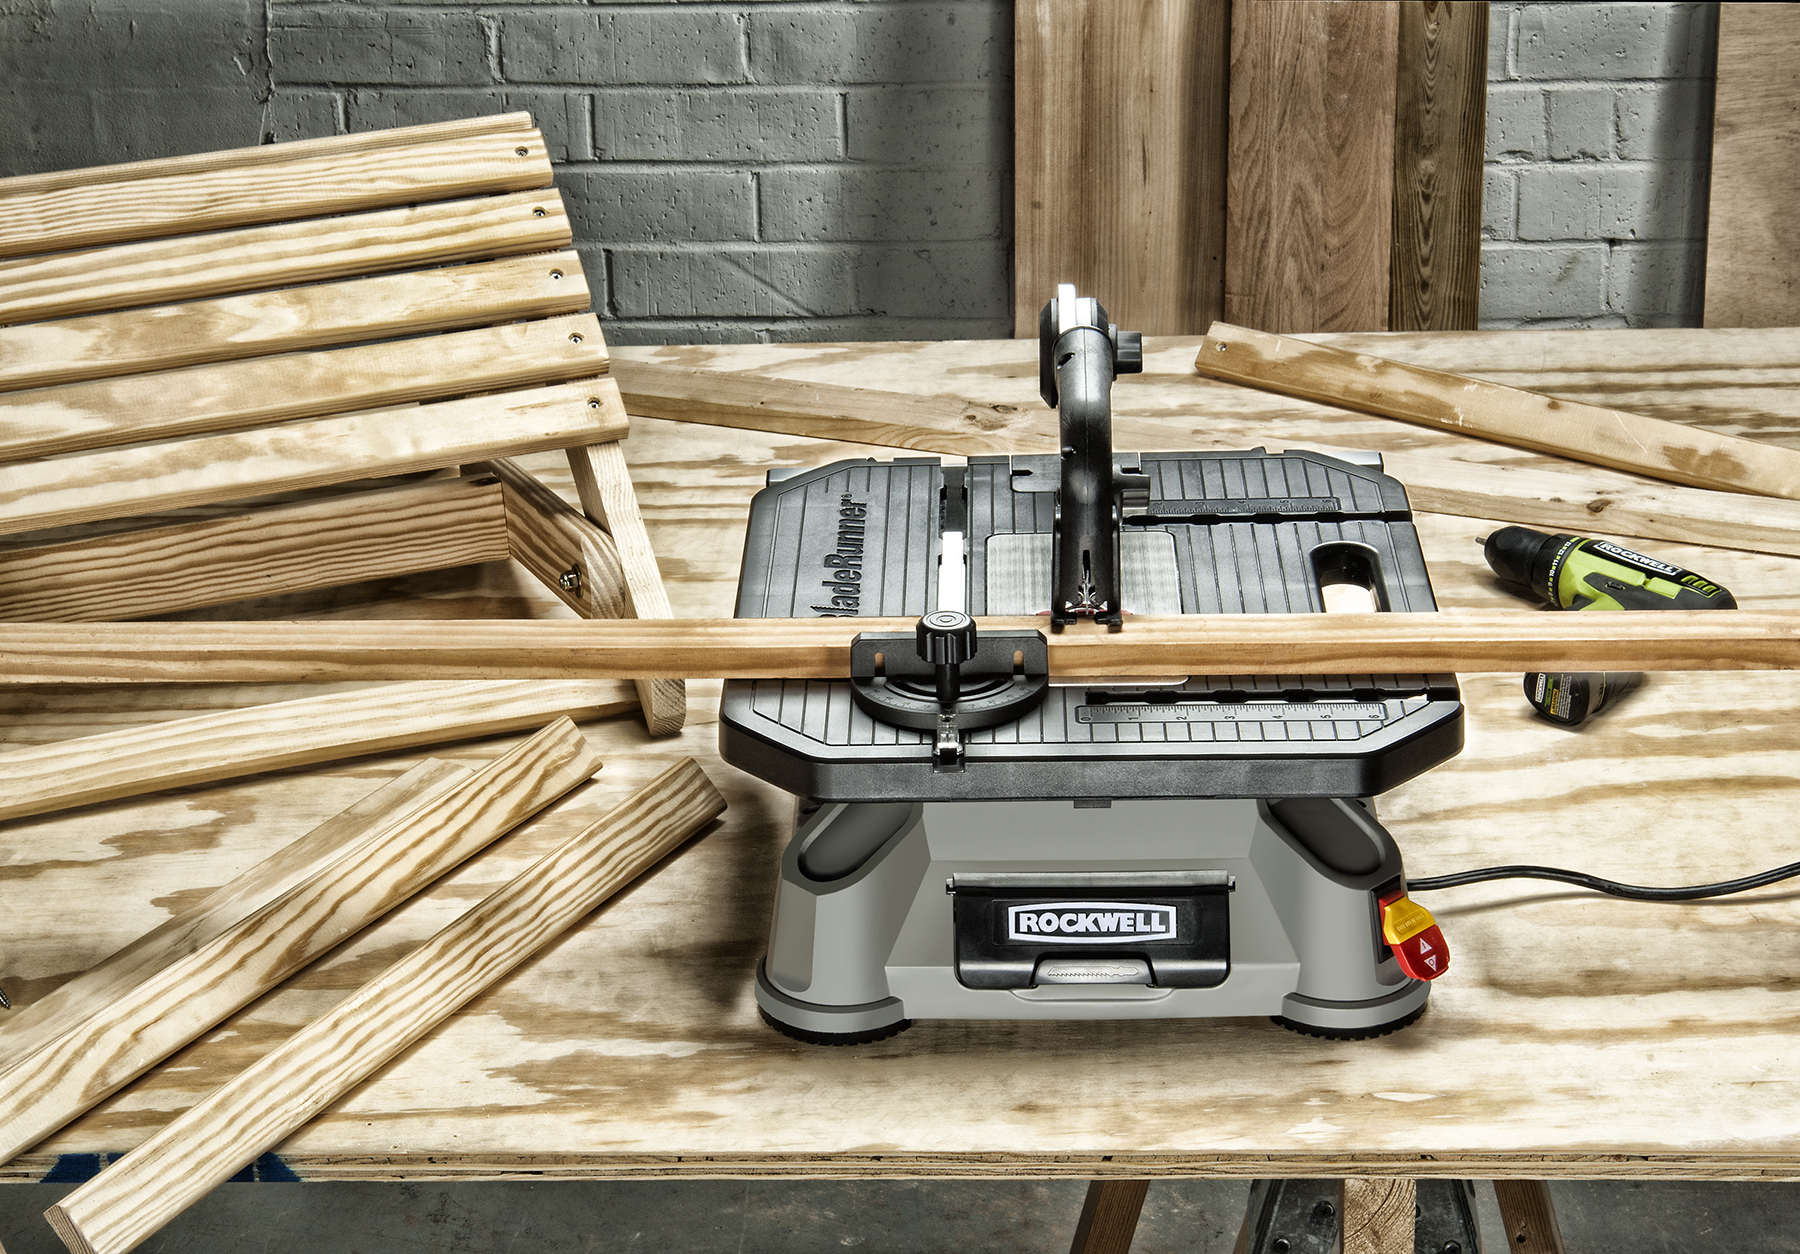 New Rockwell Bladerunner X2 Is Ideal Benchtop Saw For